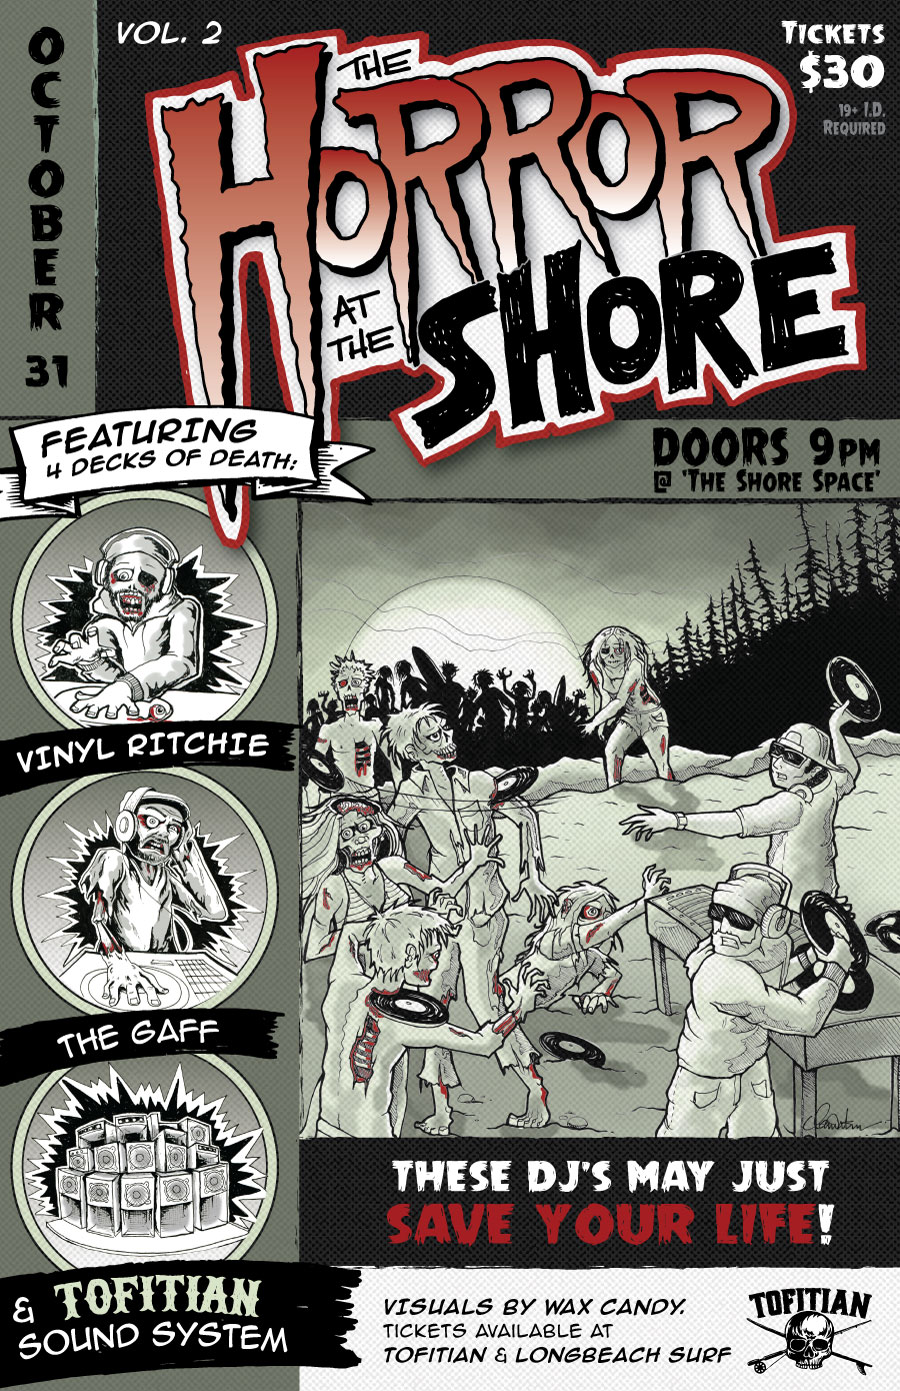 horror_at_the_shore_poster_2016.jpg